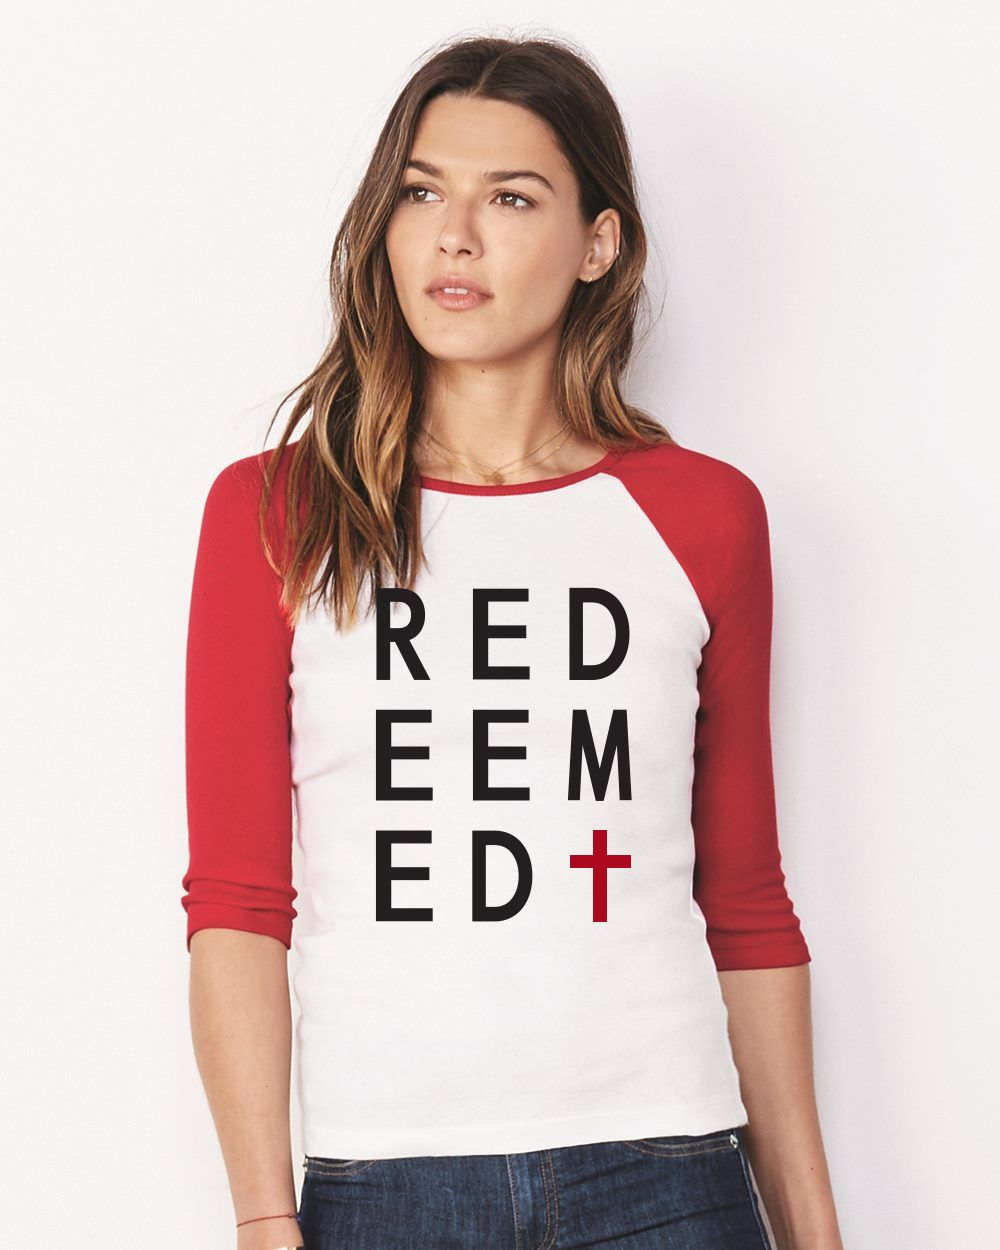 Shirt design now - New Shirt Design Redeemed Available Now His Child Com Redeemed